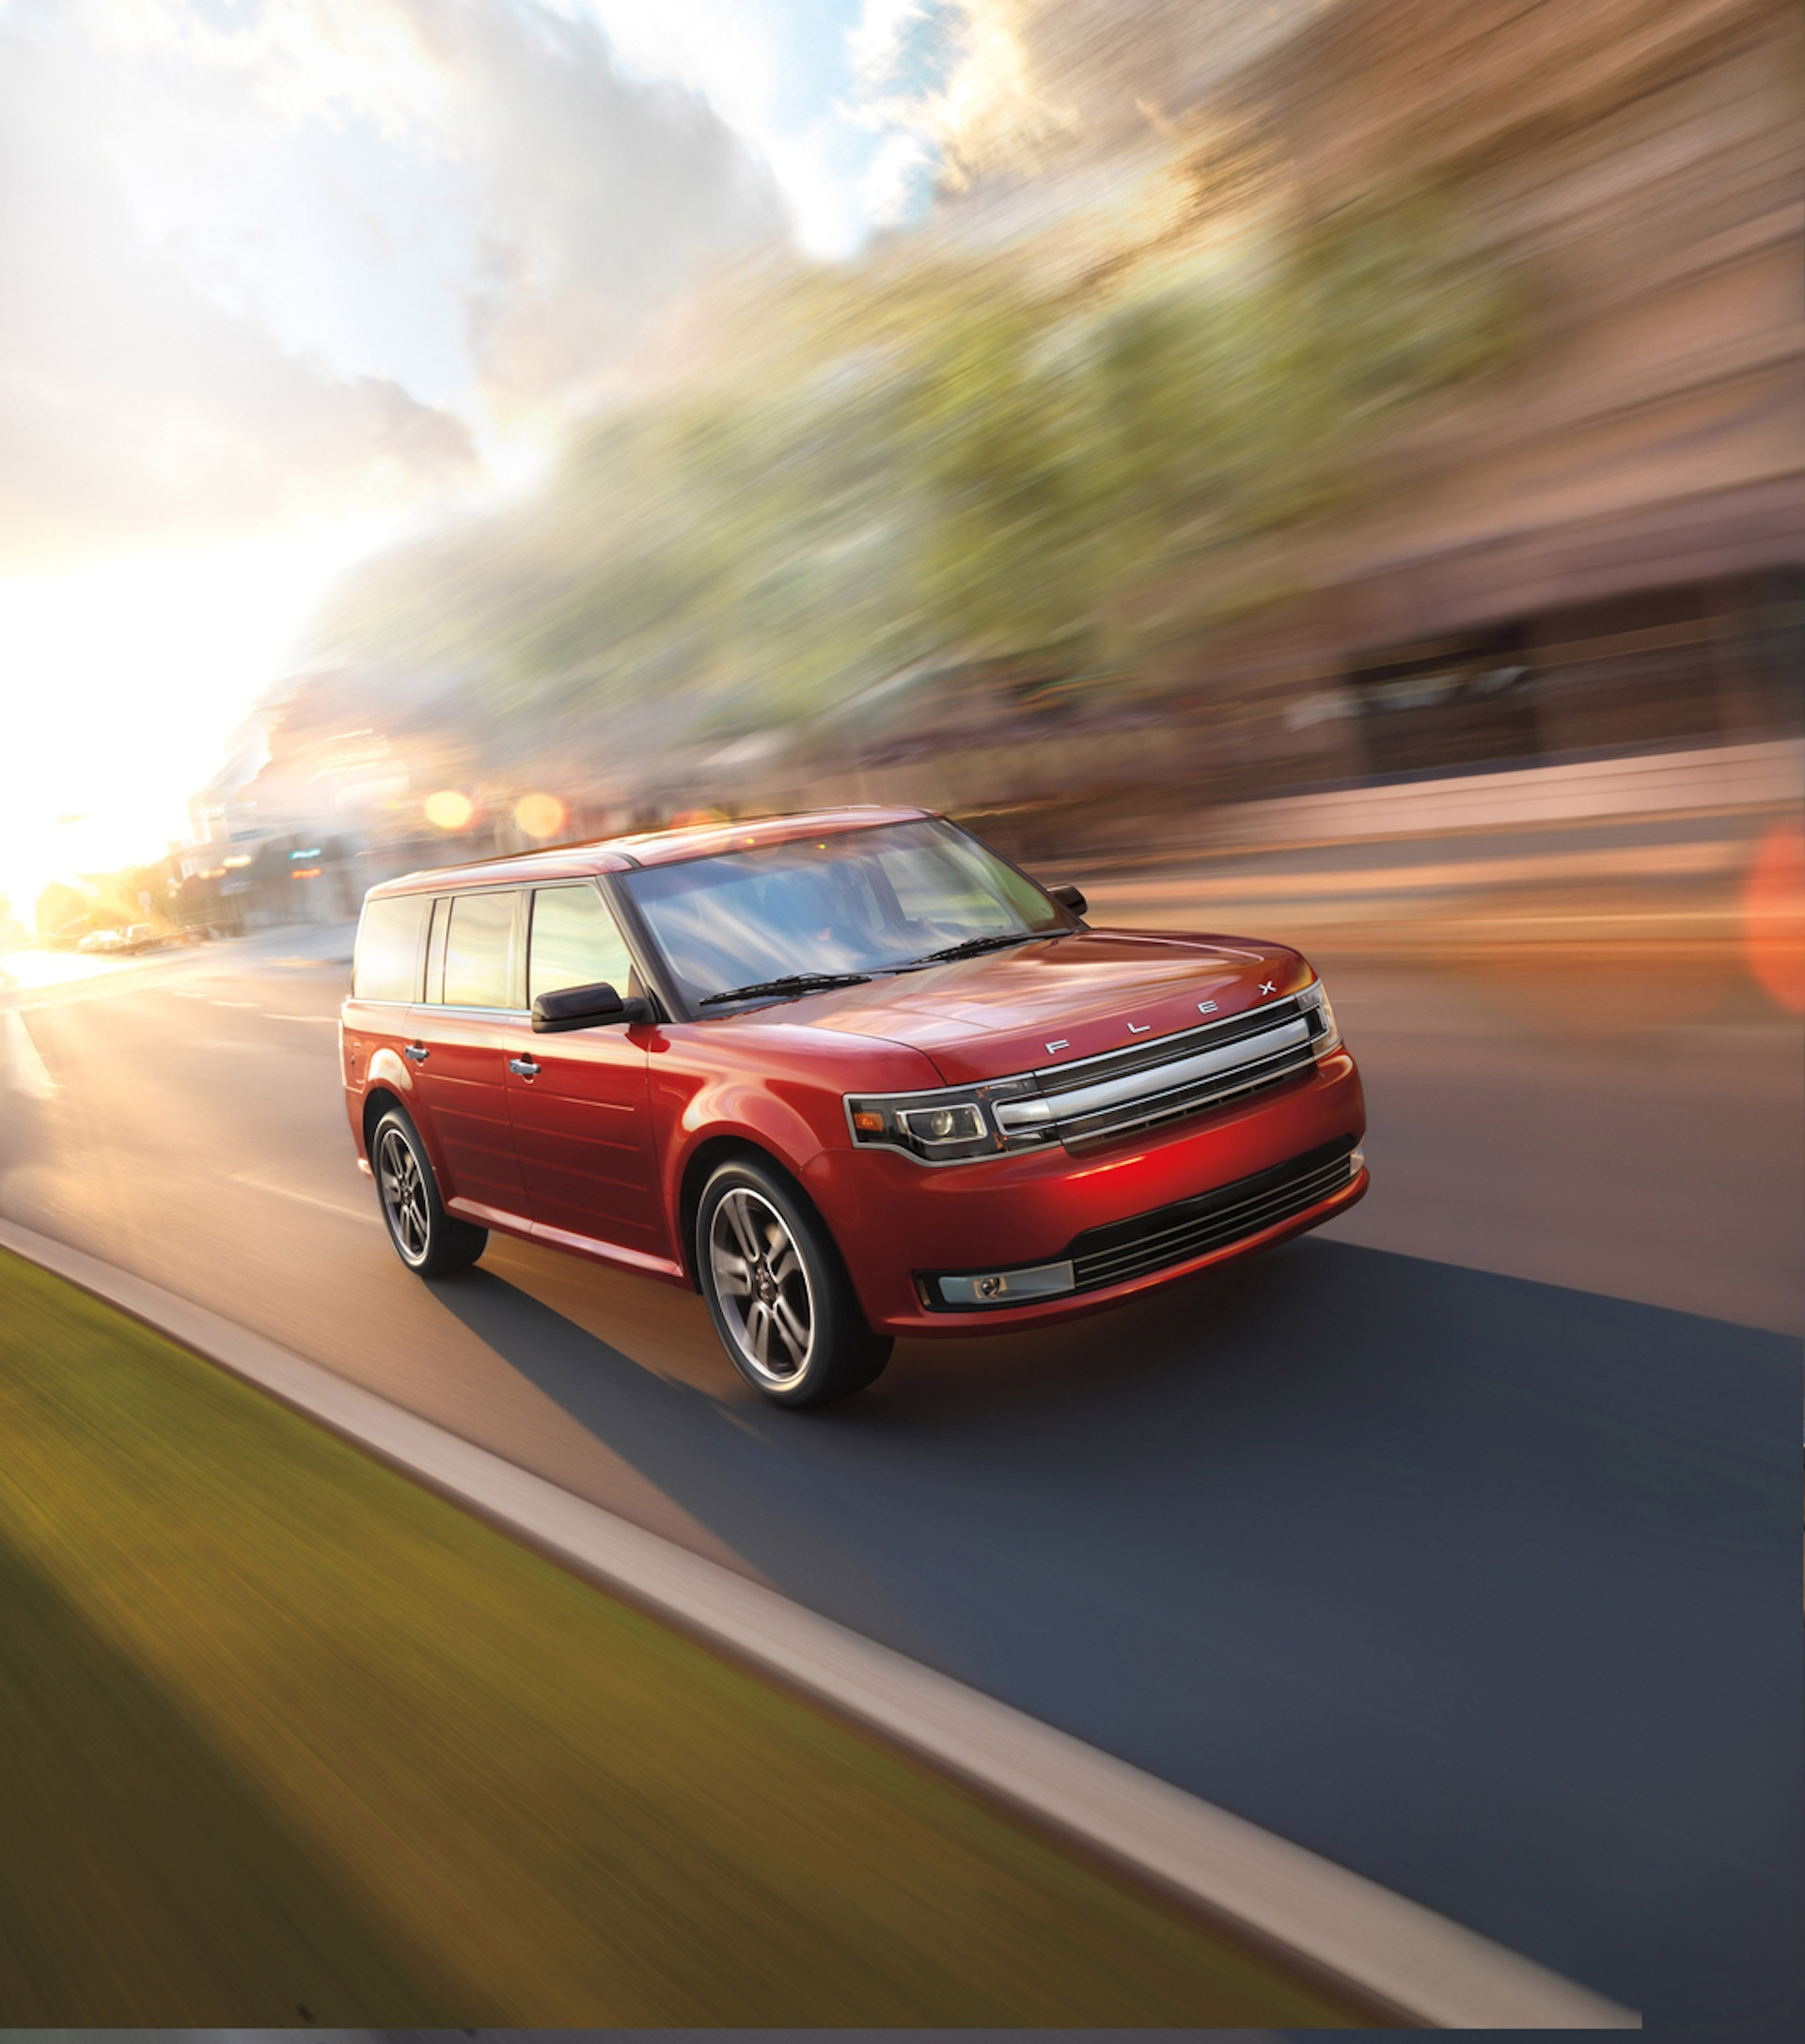 Albuquerque Volkswagen: 2016 Ford Flex Review, Ratings, Specs, Prices, And Photos